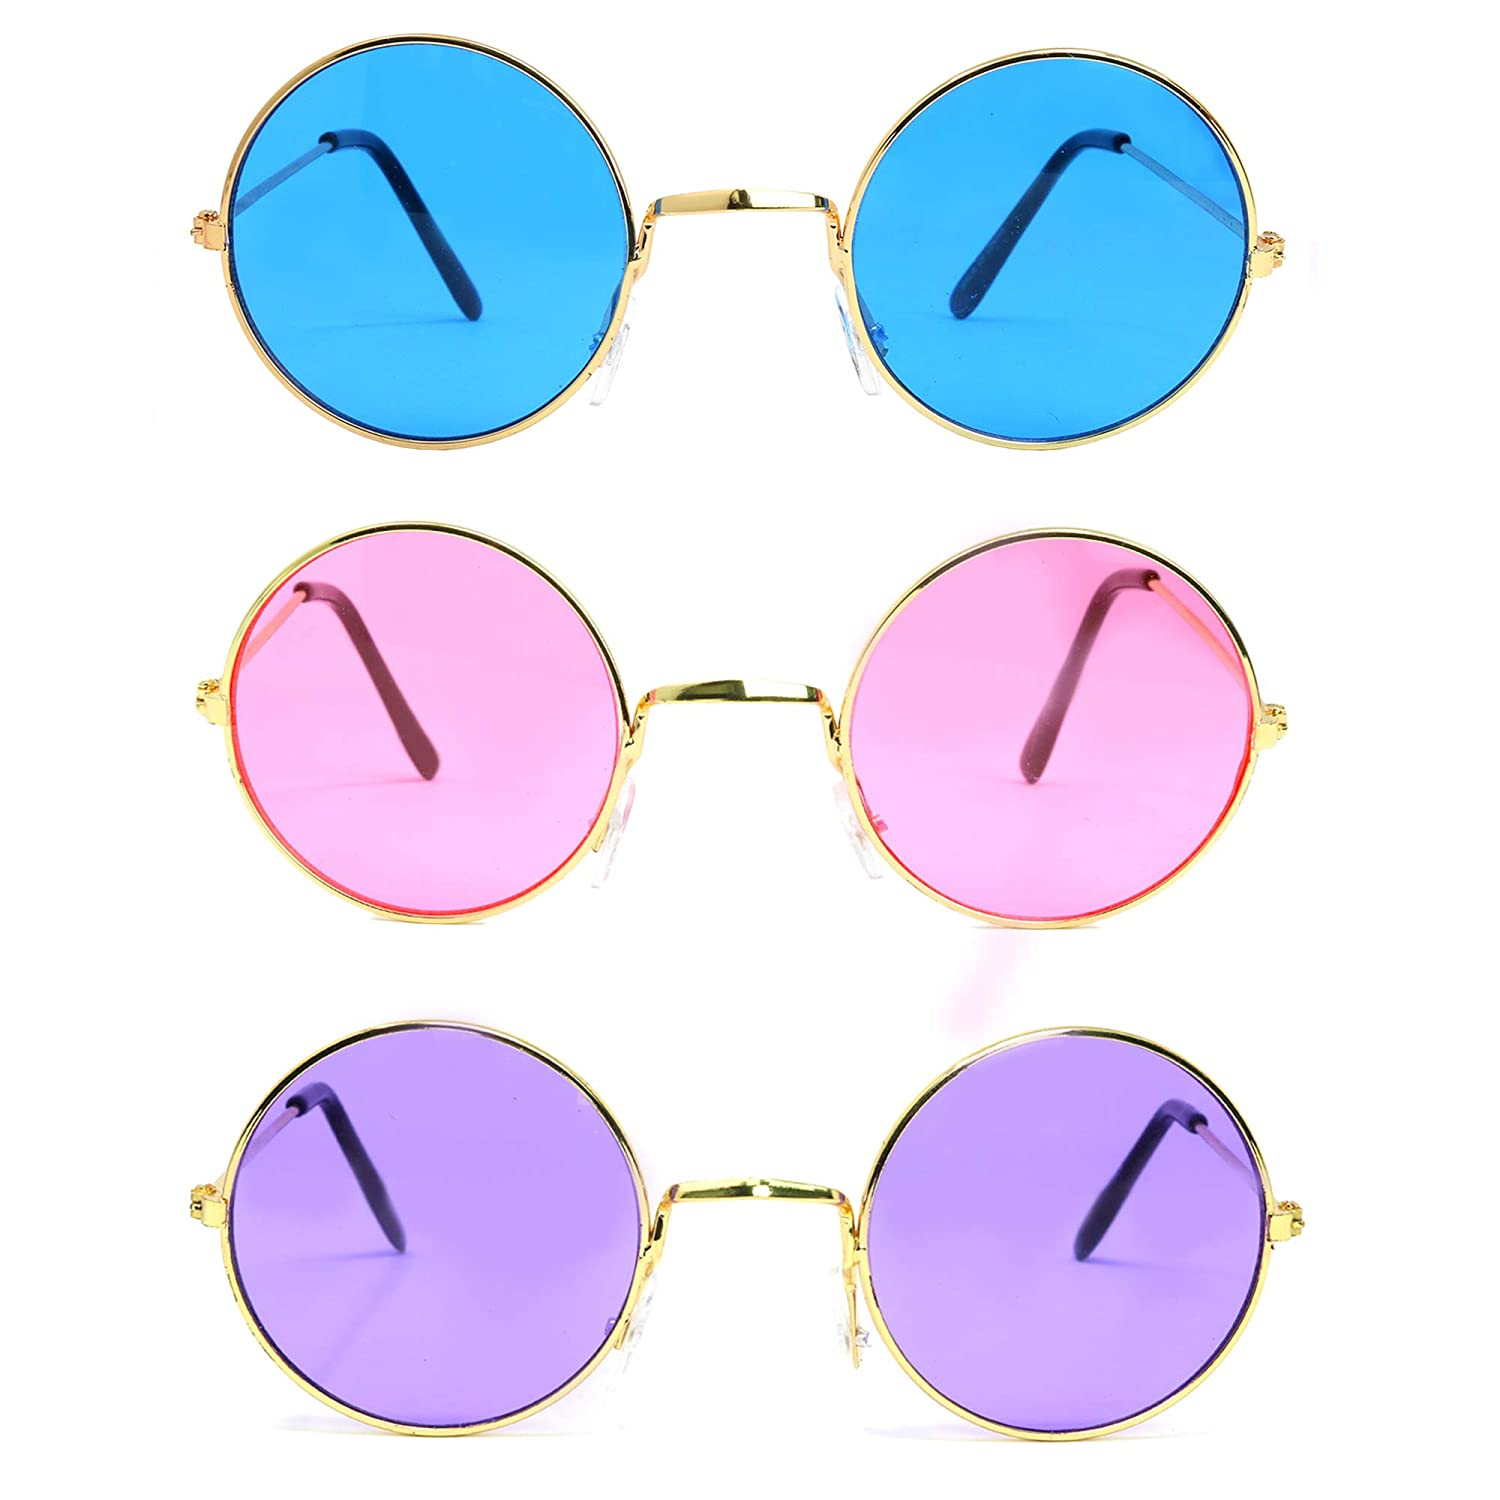 6f1bbee73da8 Amazon.com: Skeleteen John Lennon Hippie Sunglasses – Pink Purple and Blue  60's Style Circle Glasses Favors - 12 Pairs: Toys & Games